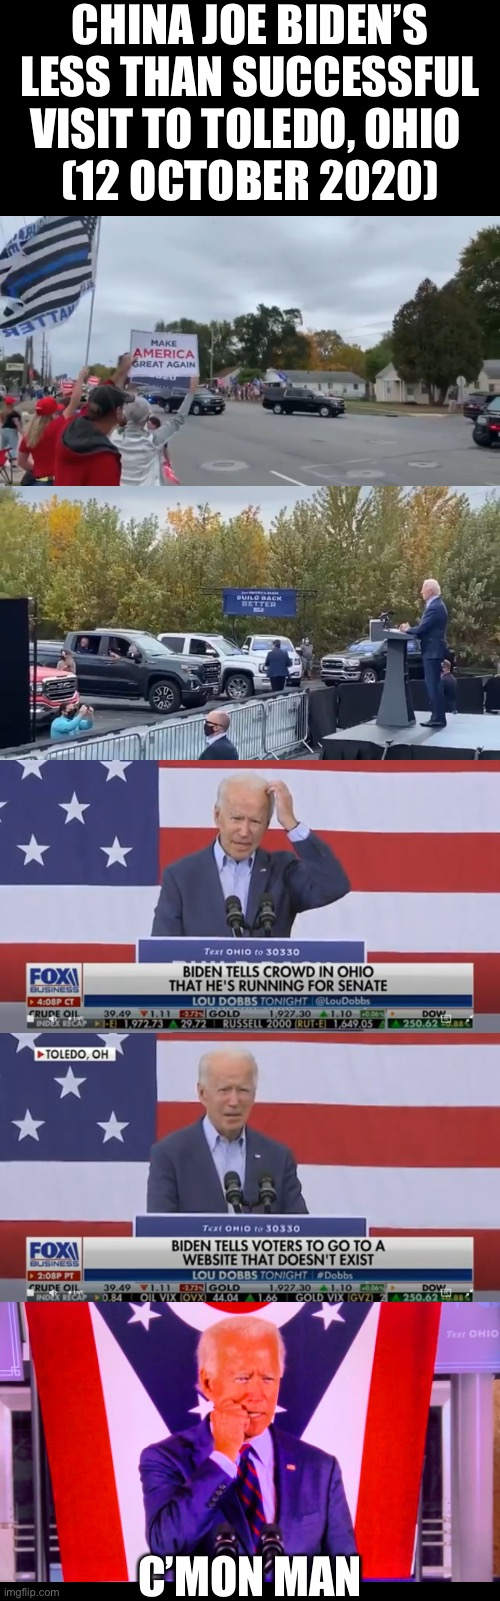 China Joe Biden — 12 October 2020. You can't make this up! |  CHINA JOE BIDEN'S LESS THAN SUCCESSFUL VISIT TO TOLEDO, OHIO  (12 OCTOBER 2020); C'MON MAN | image tagged in joe biden,creepy joe biden,democrat party,democratic socialism,election 2020,president trump | made w/ Imgflip meme maker